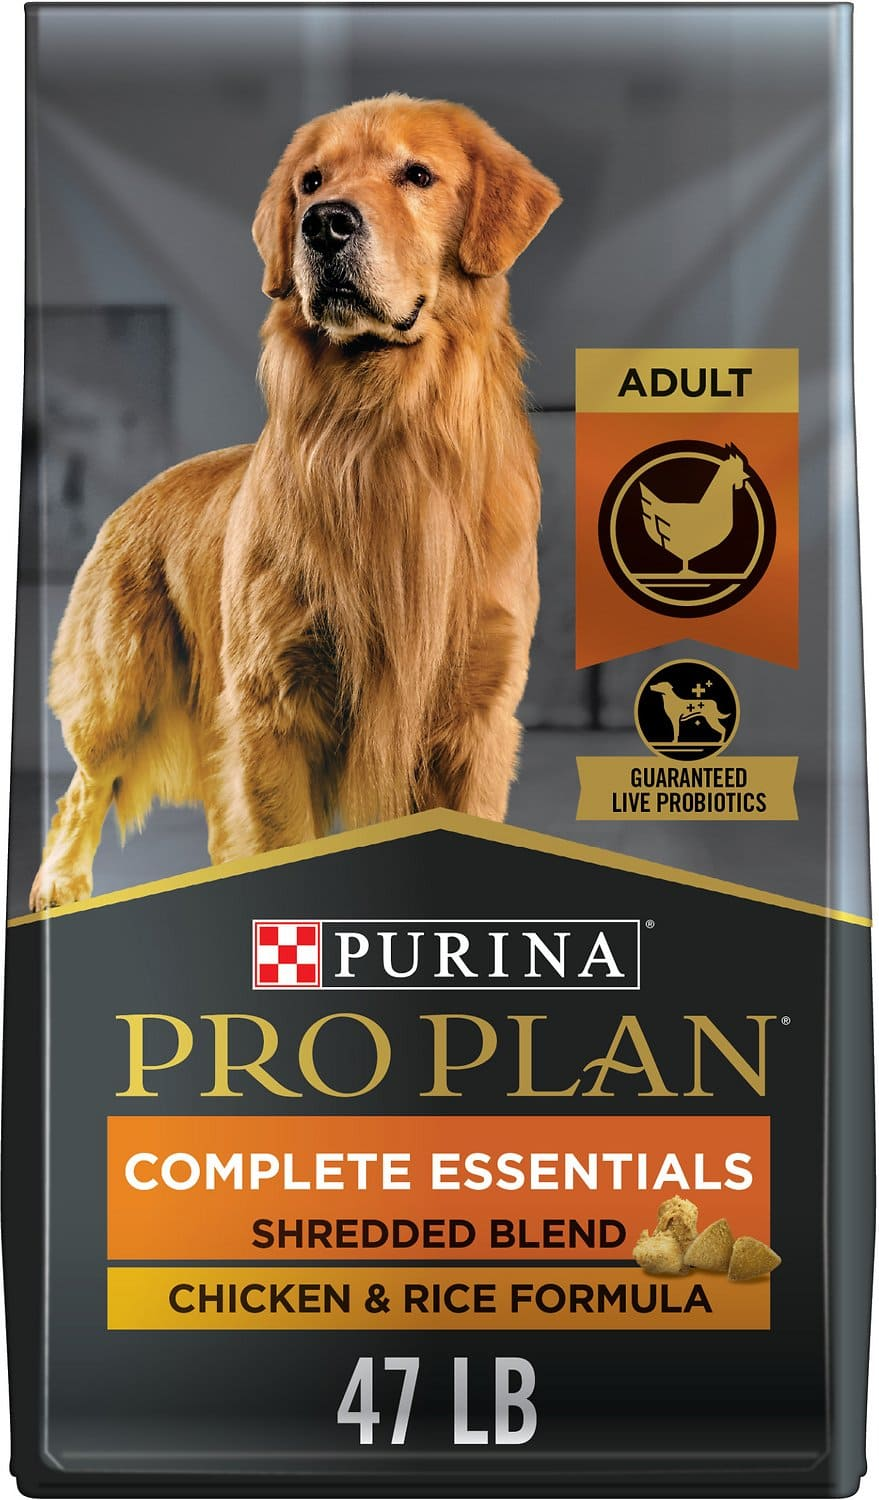 Purina Pro Plan Adult Complete Essentials Shredded Blend Formula for Dogs 47 lbs Chicken & Rice 1